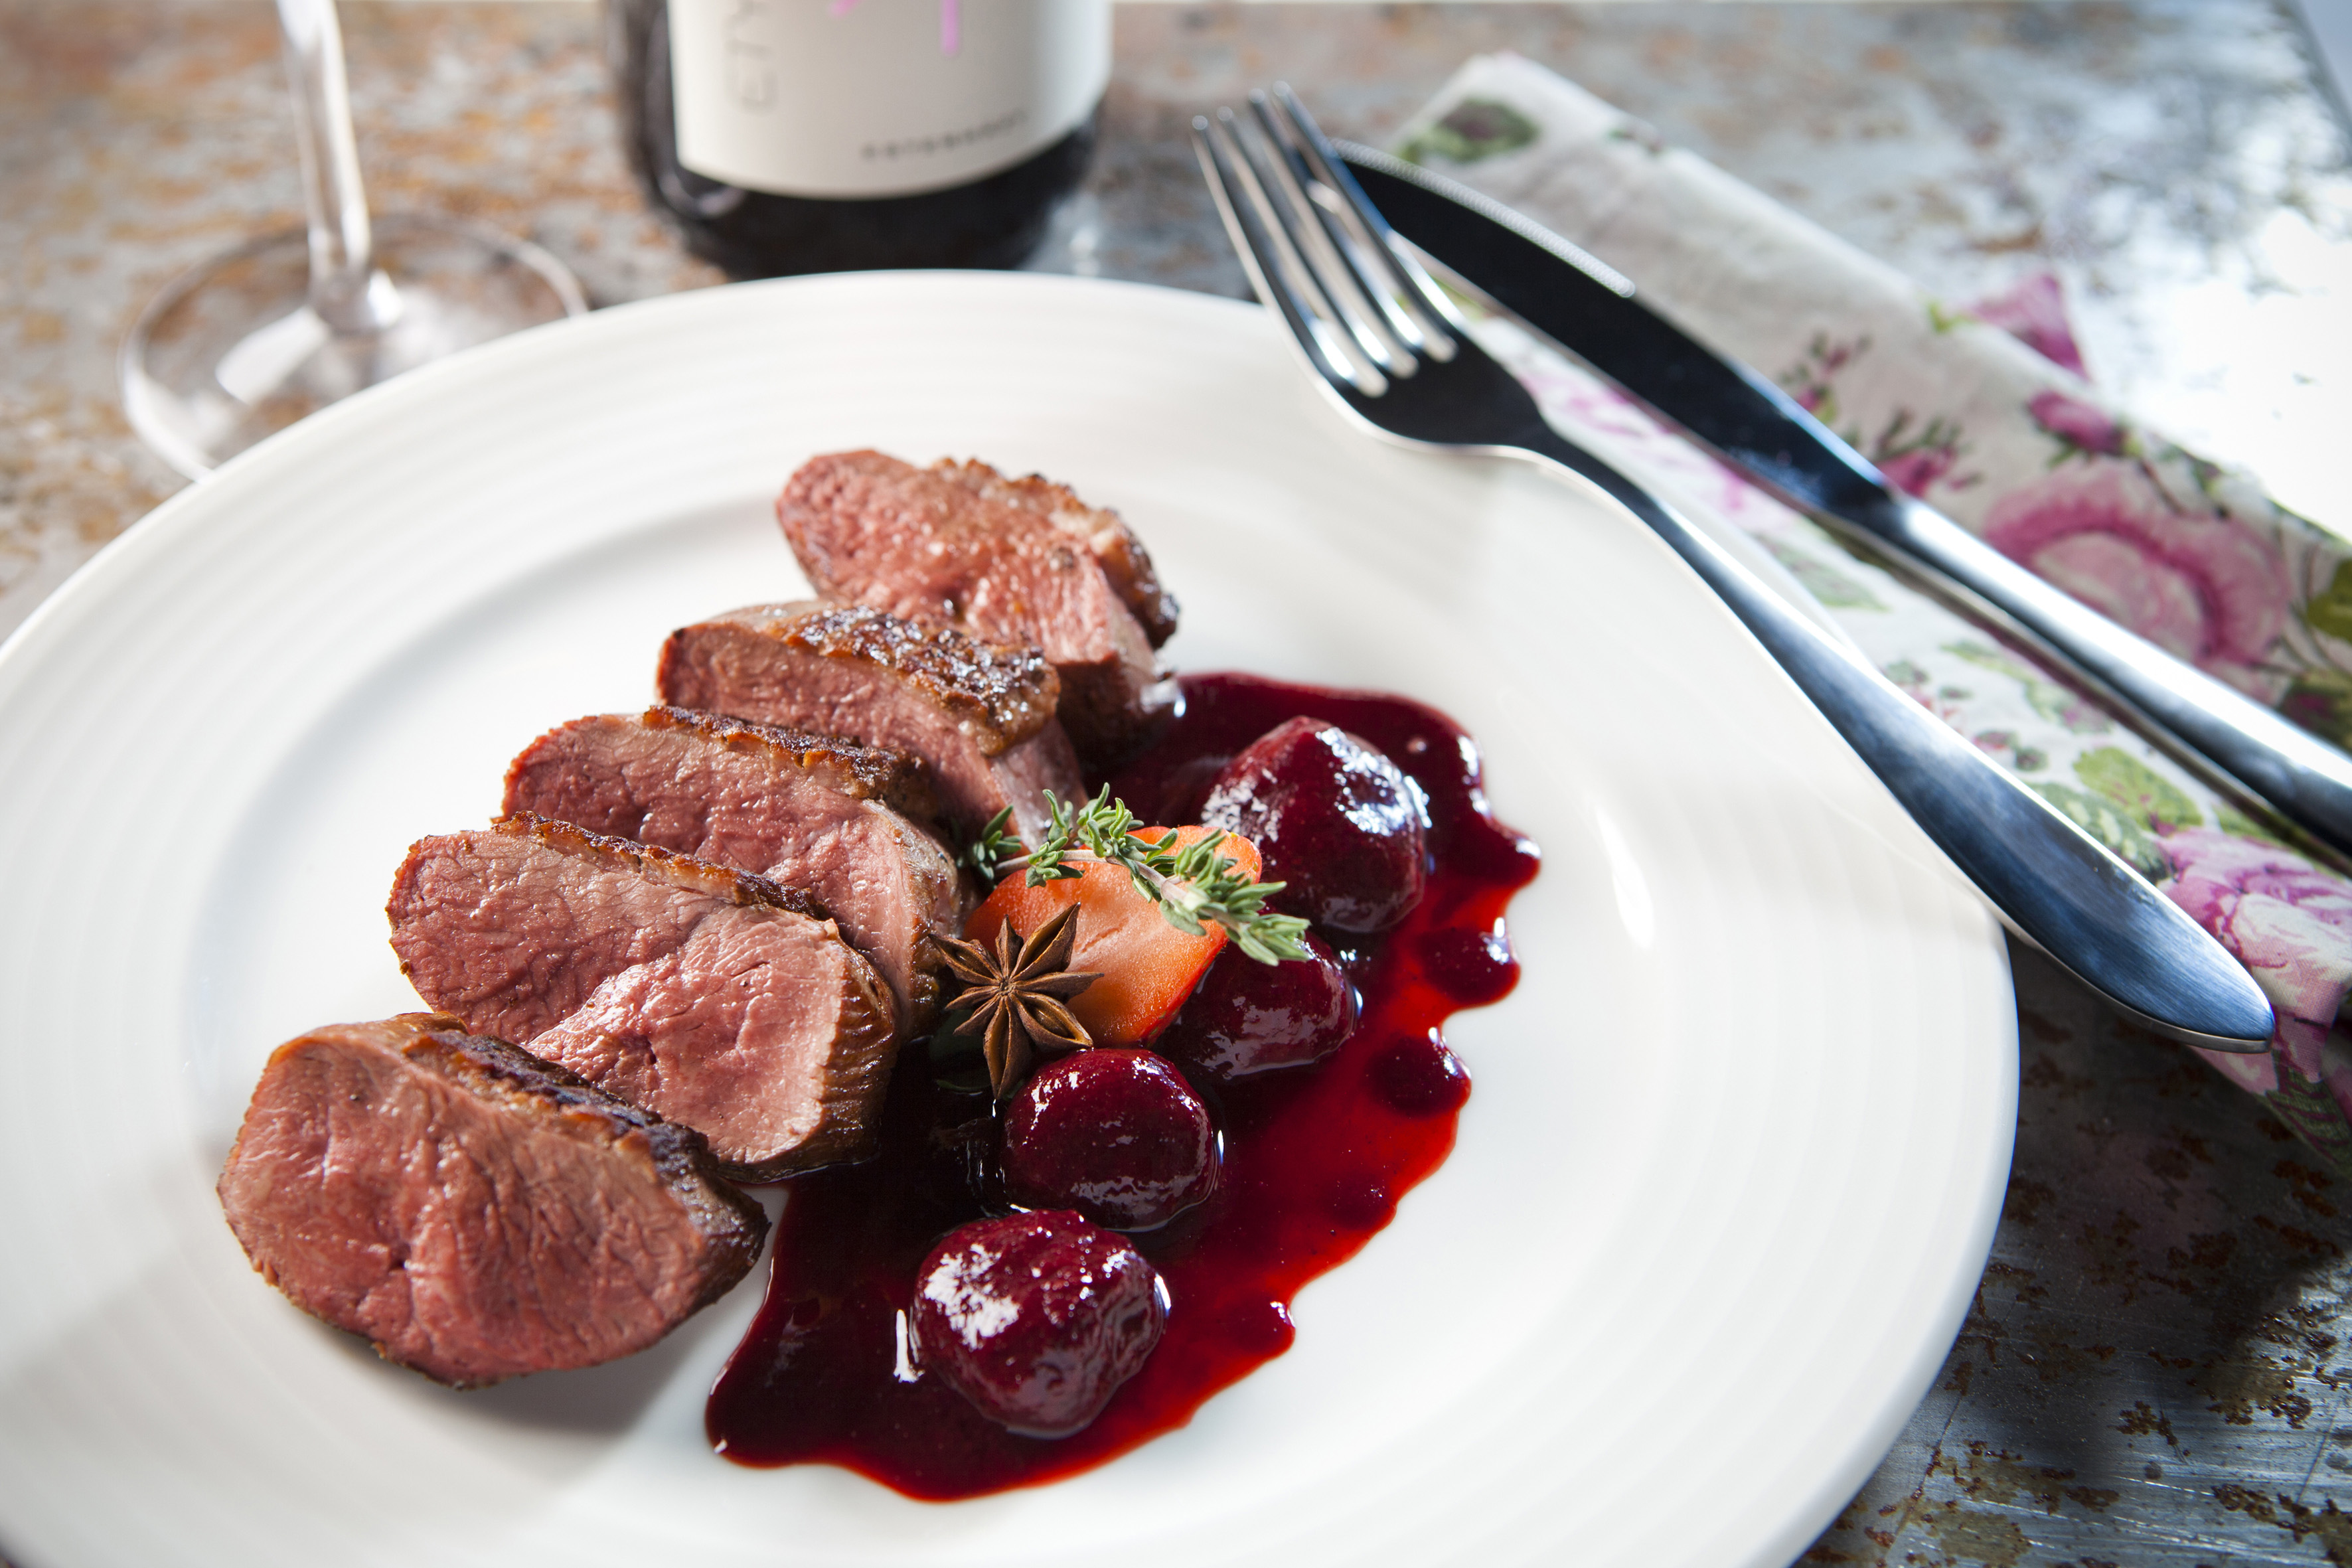 Pink duck breast with star anise and strawberry sauce for Spiced cranberry sauce with orange and star anise